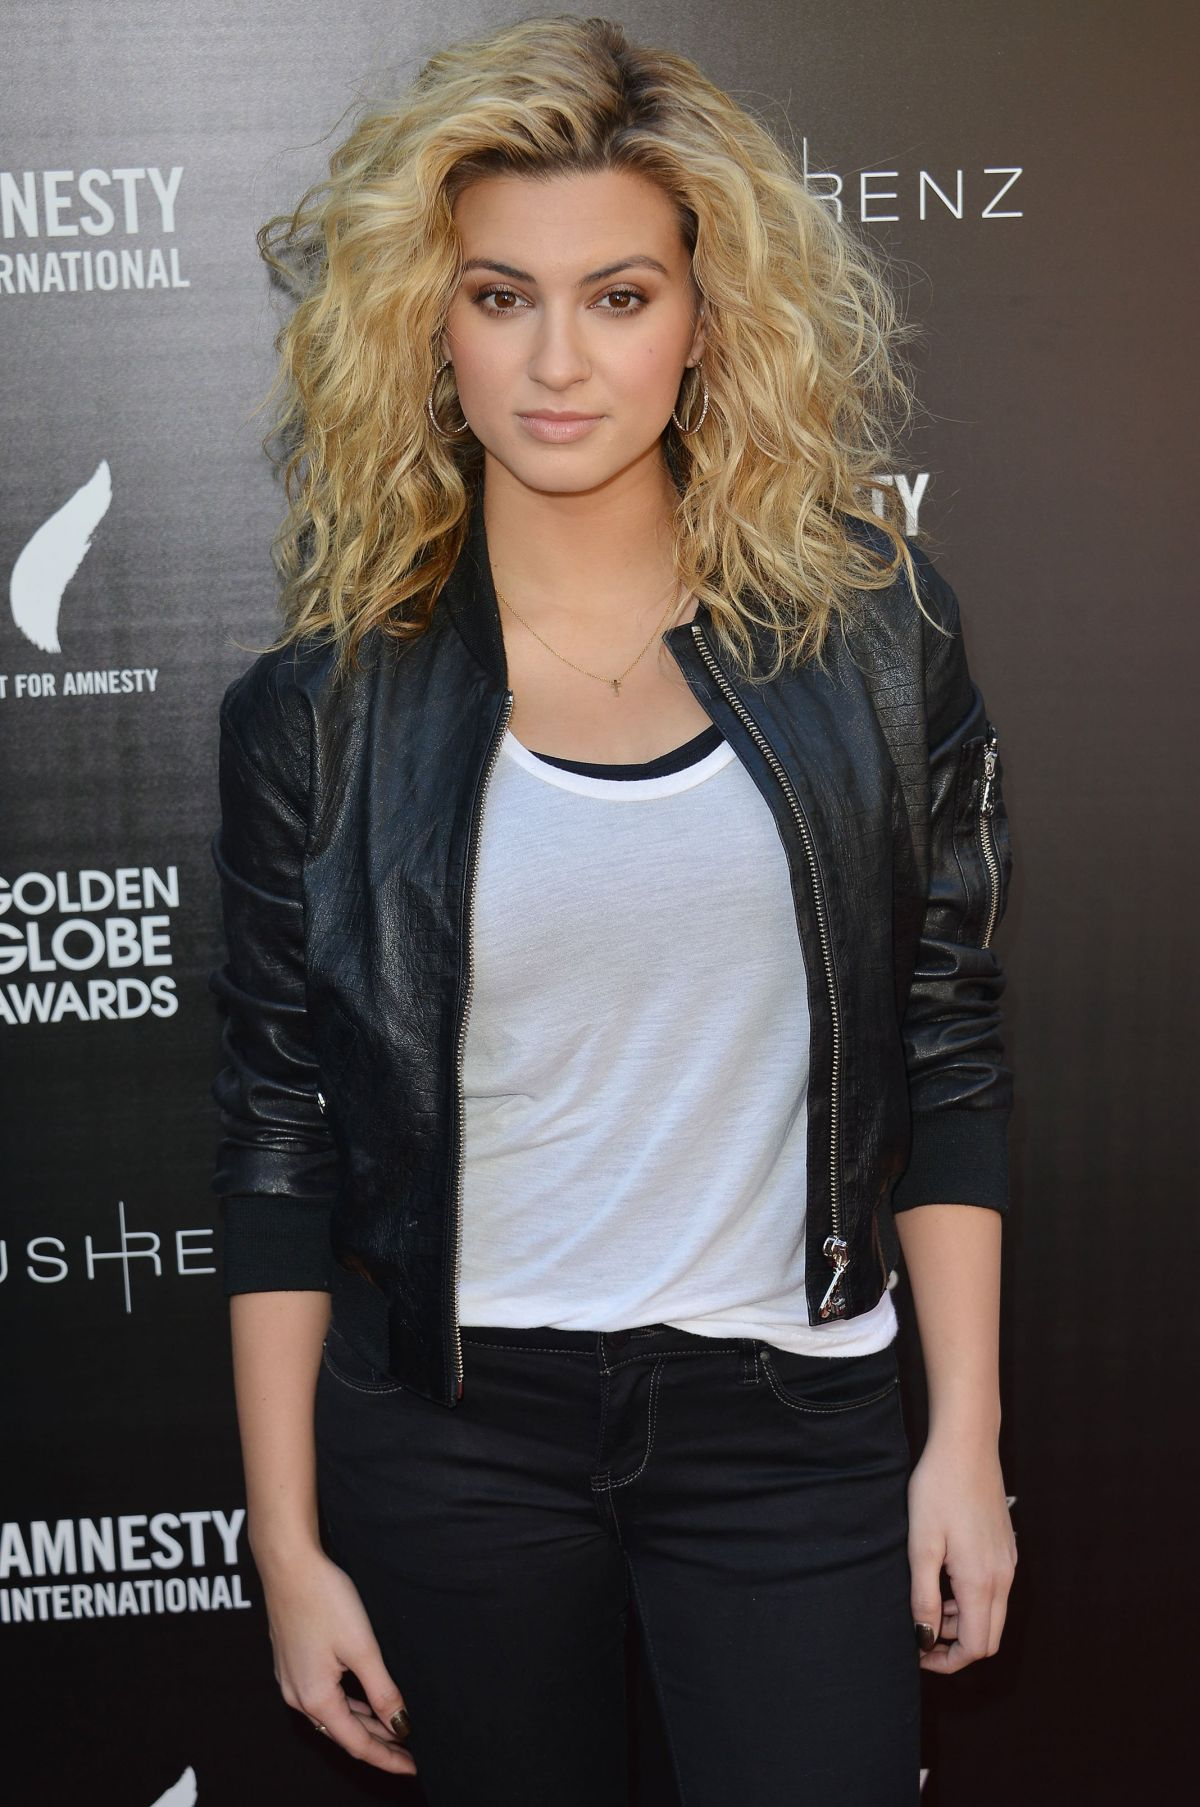 TORI KELLY at Inaugural Art for Amnesty Pre-golden Globes Recognition Brunch in Los Angeles 01/08/2016